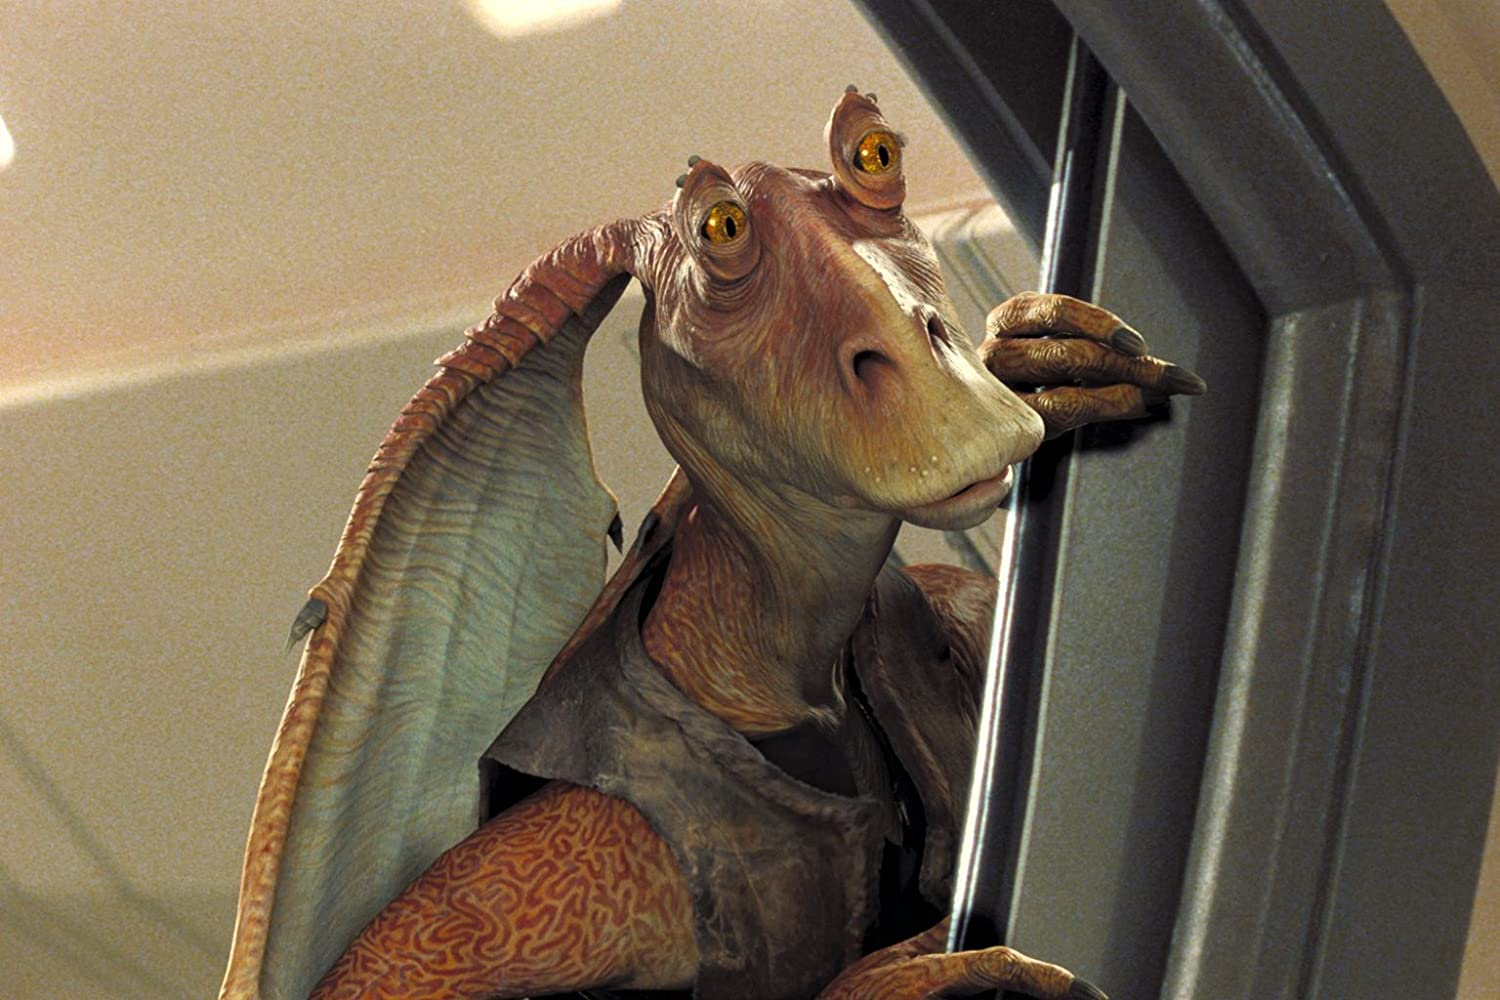 Ahmed Best in Star Wars Episode I - The Phantom Menace 1999